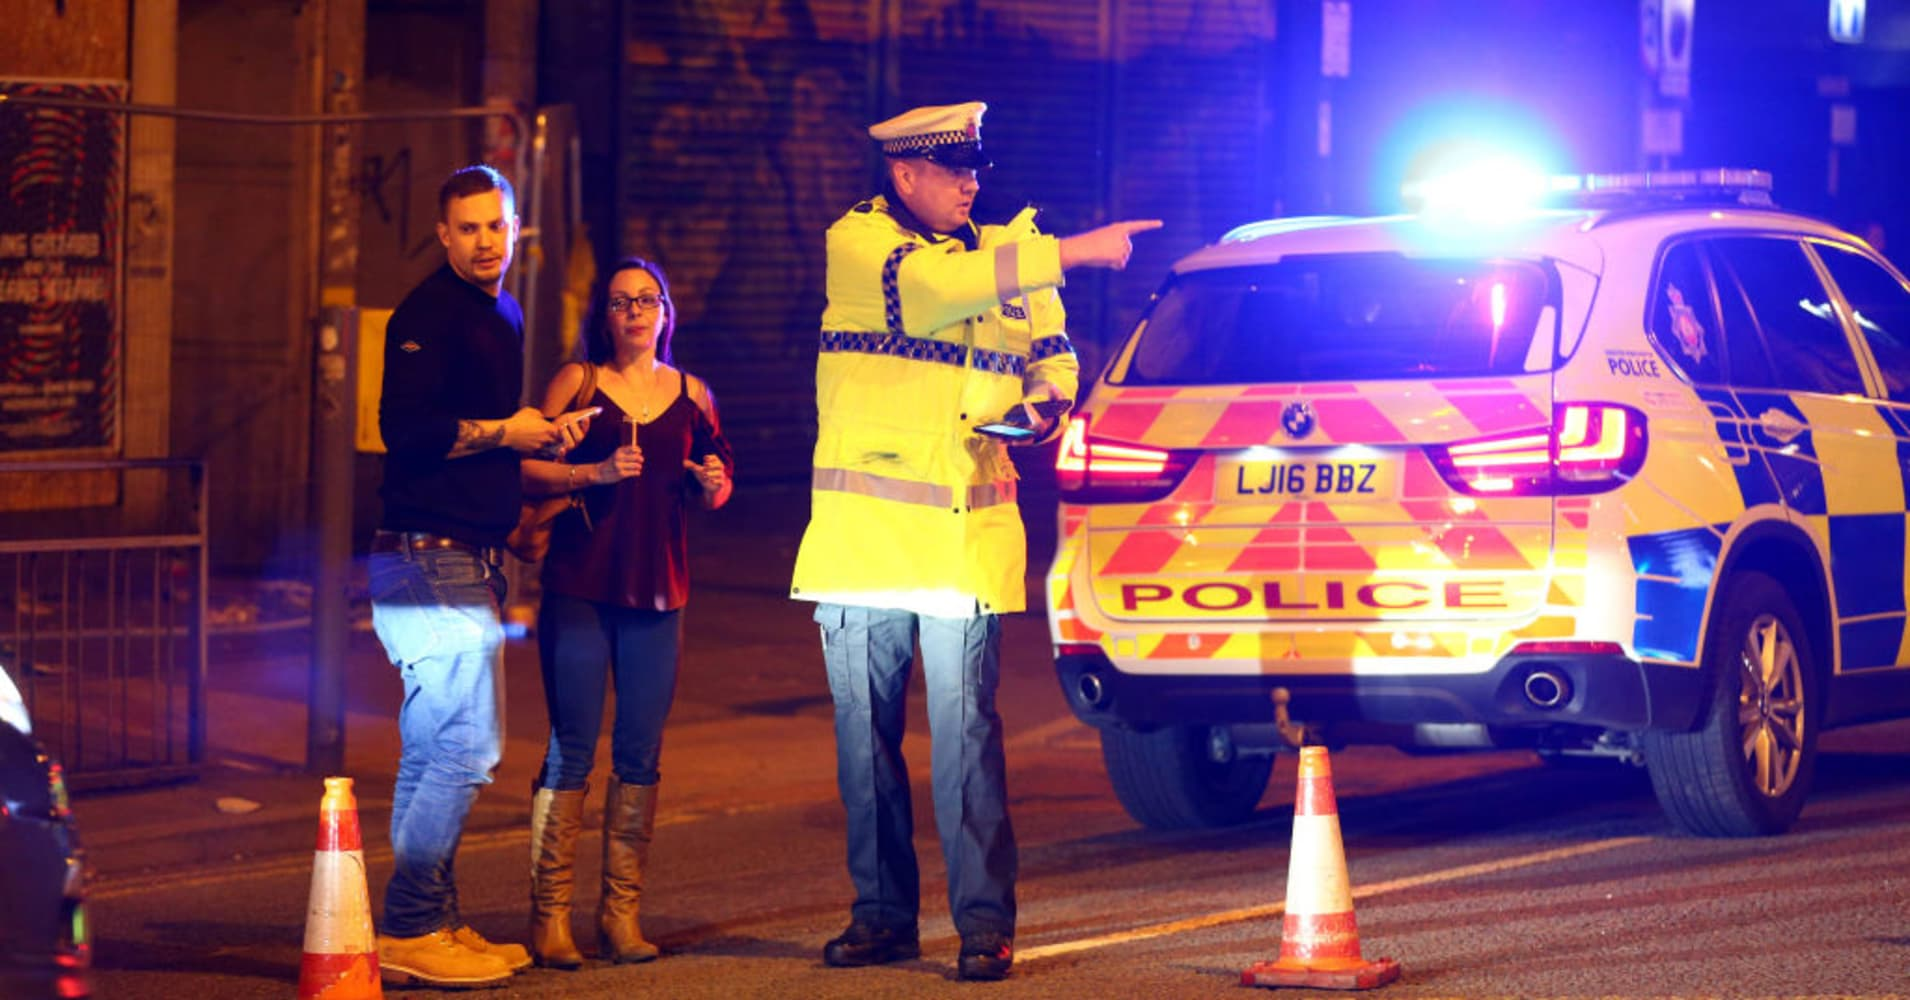 Manchester attack likely the work of lone wolf than terror network, analyst says